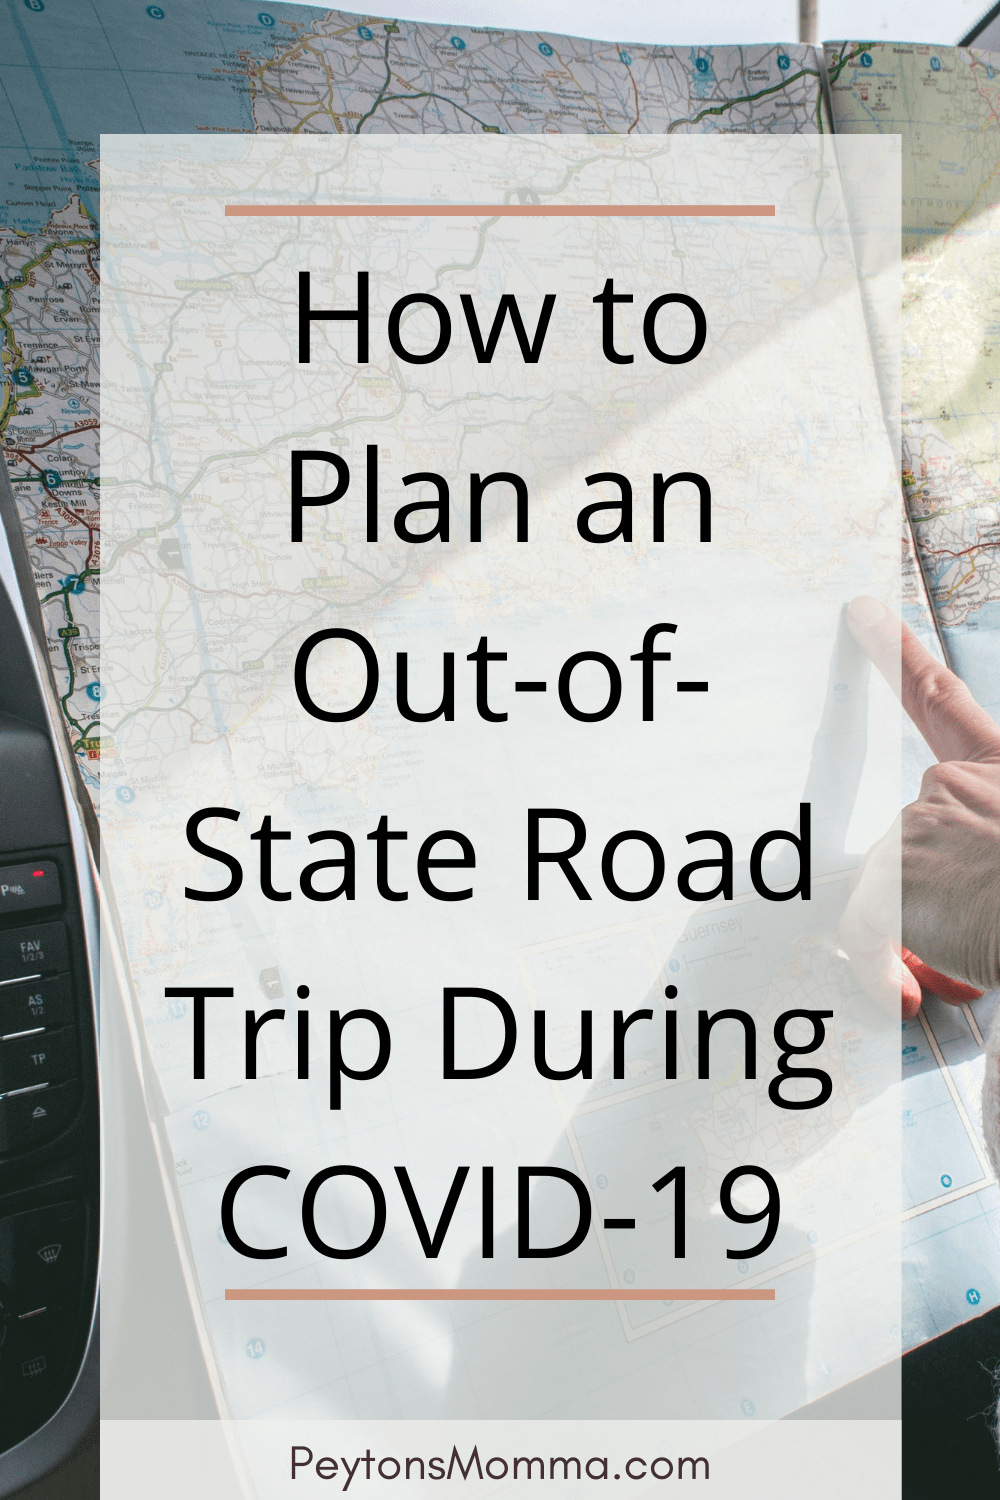 How to Plan an Out-of-State Road Trip During COVID-19 - Peyton's Momma™